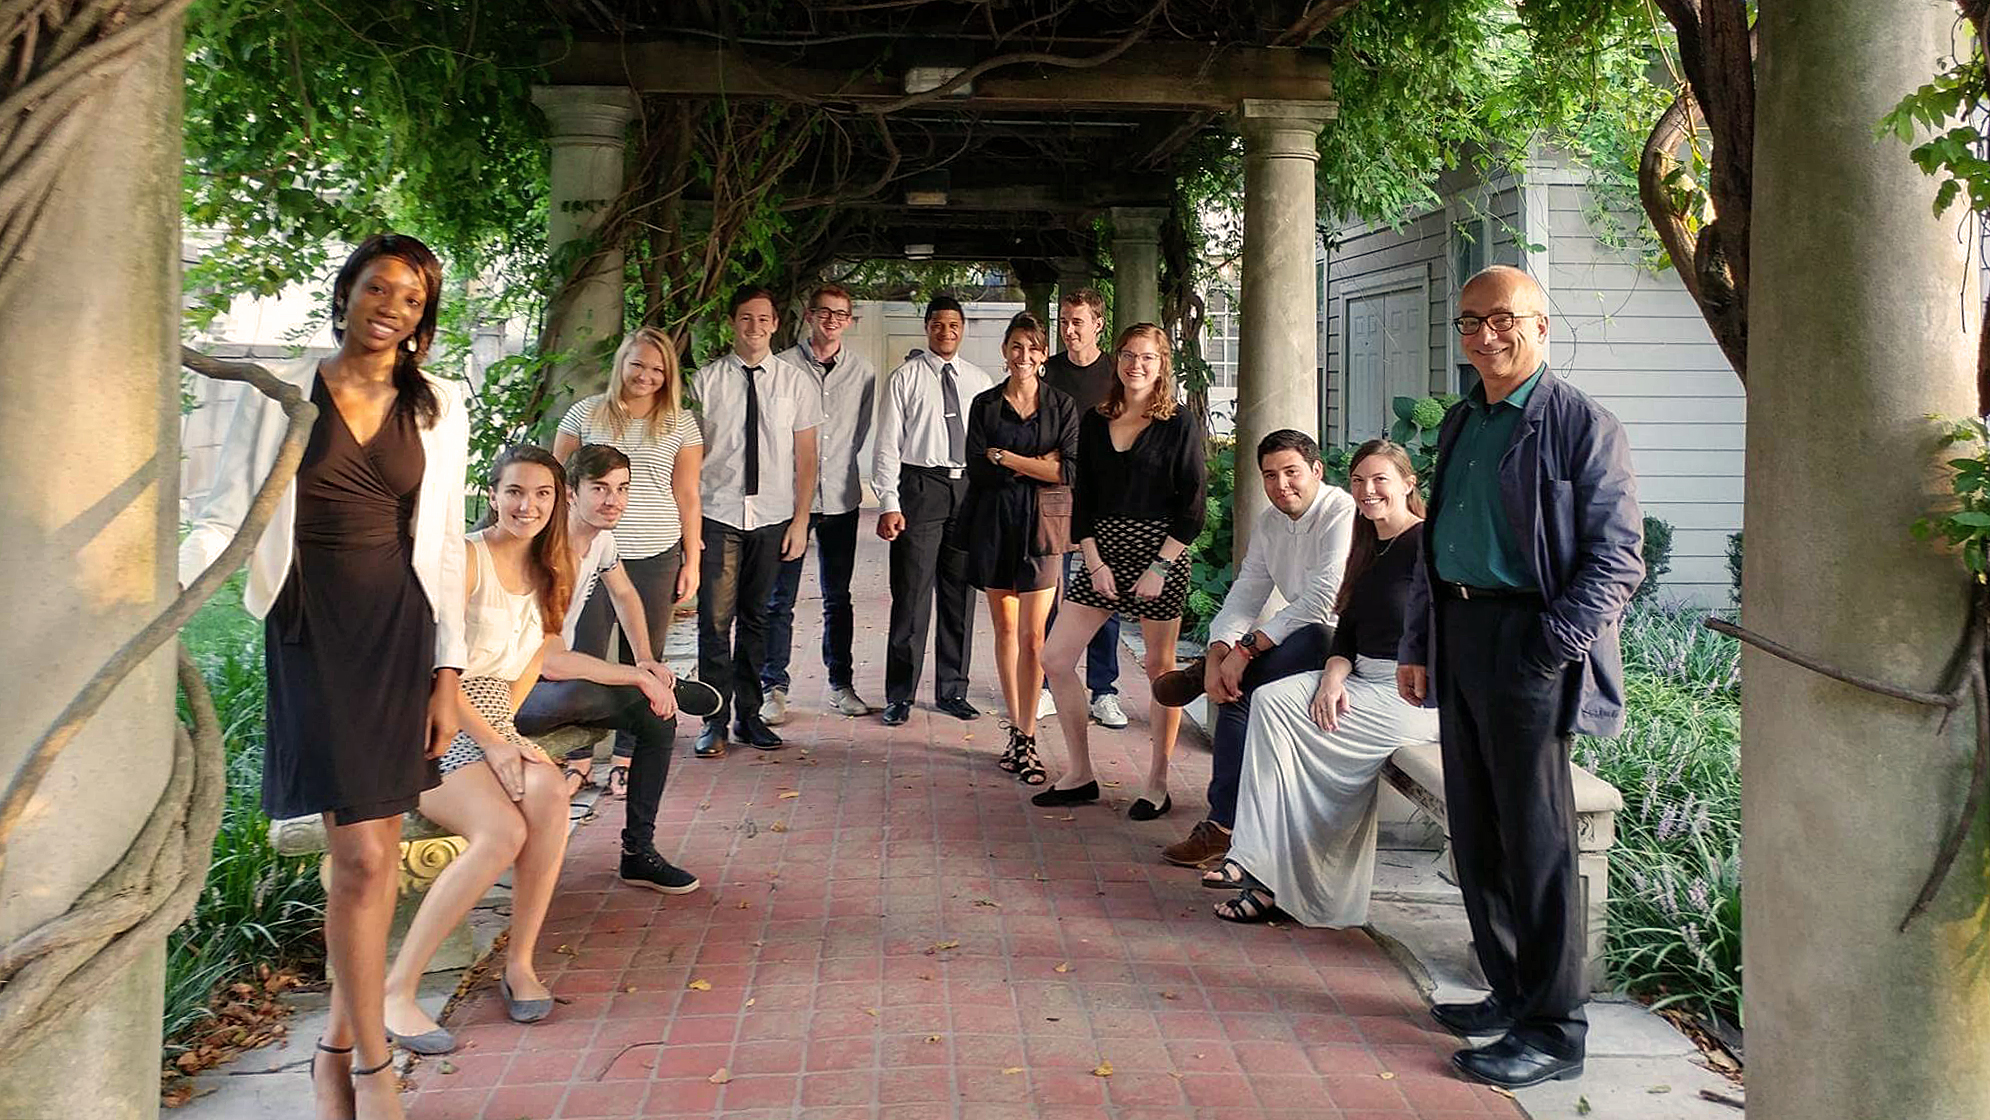 KCDC Studio at the Kansas City Museum. Left to Right: Jessica Carson, Courtney Minter, Travis Snell, Taylor Allen, Drew Lindsey, Connor Privett, Isaiah Naives, Julia Guerra, Eric Janes, Kylie Schwaller, Kevin Madera, Hannah Hackman, and Professor Vladimir Krstic.